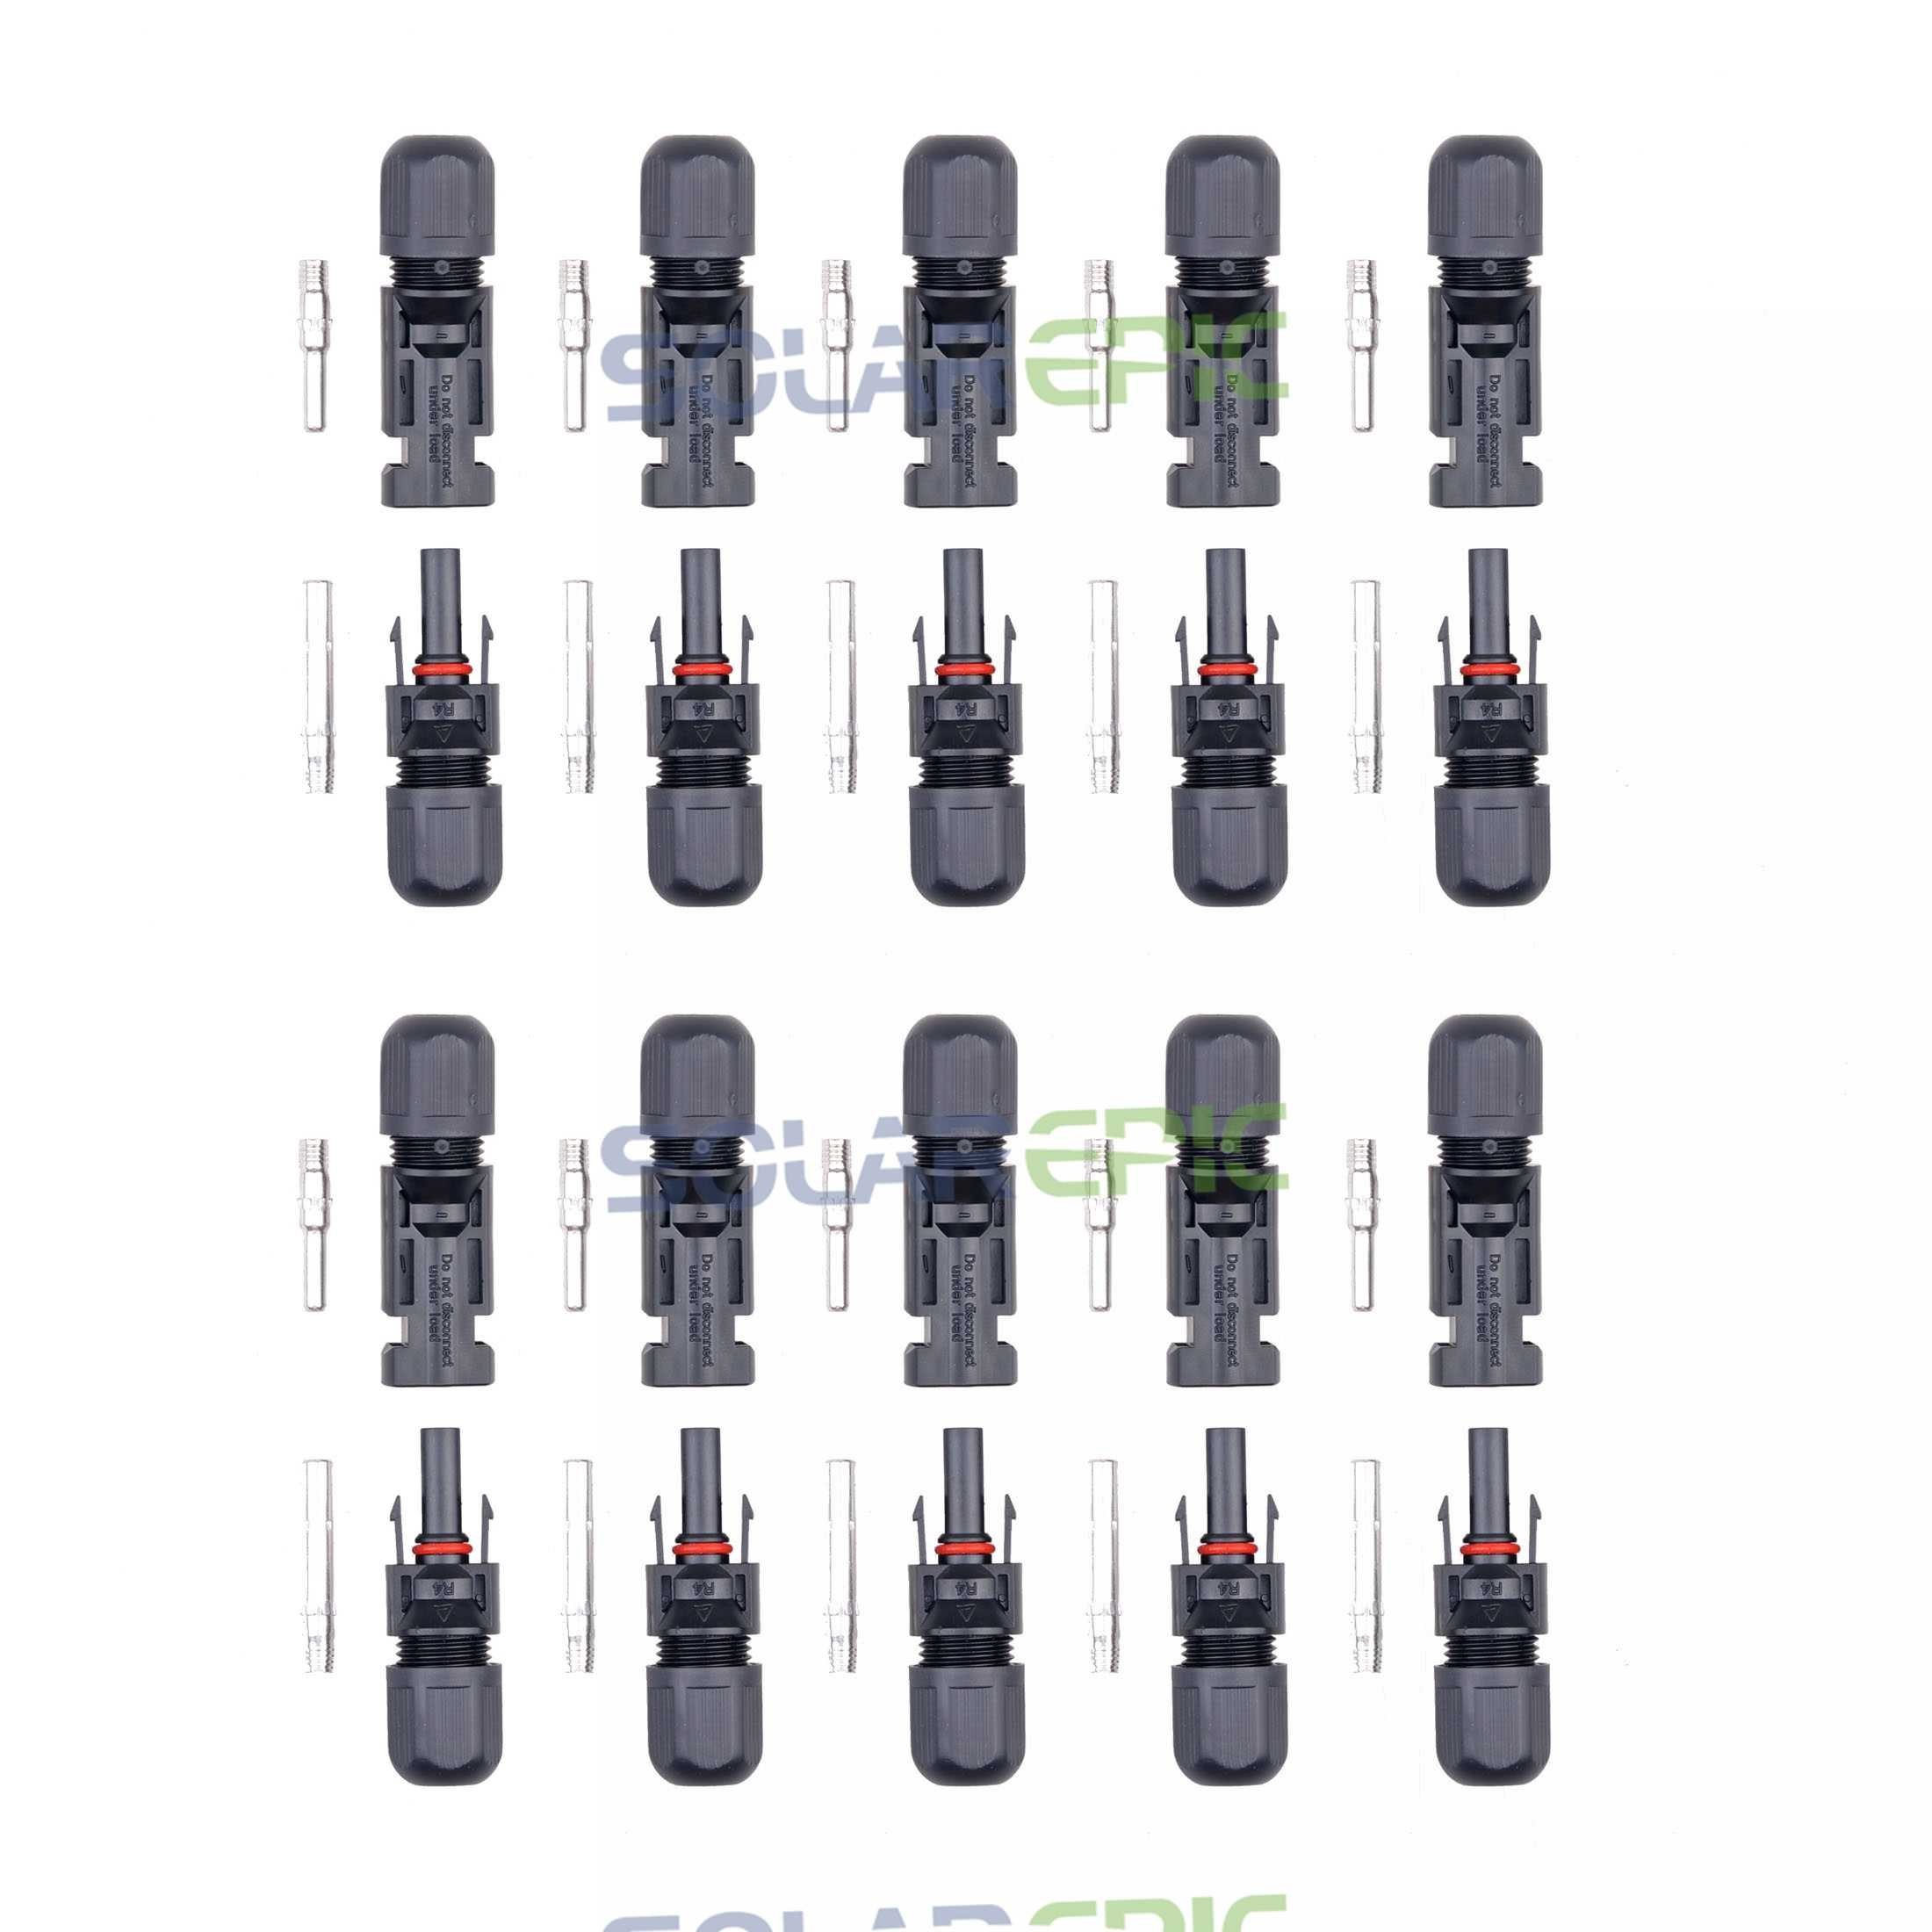 10 Pairs MC4 Solar Panel Cable Connector MC4 Cable Connectors Set Solar Panel Micro Connector Good Quality Panel Connector MC4